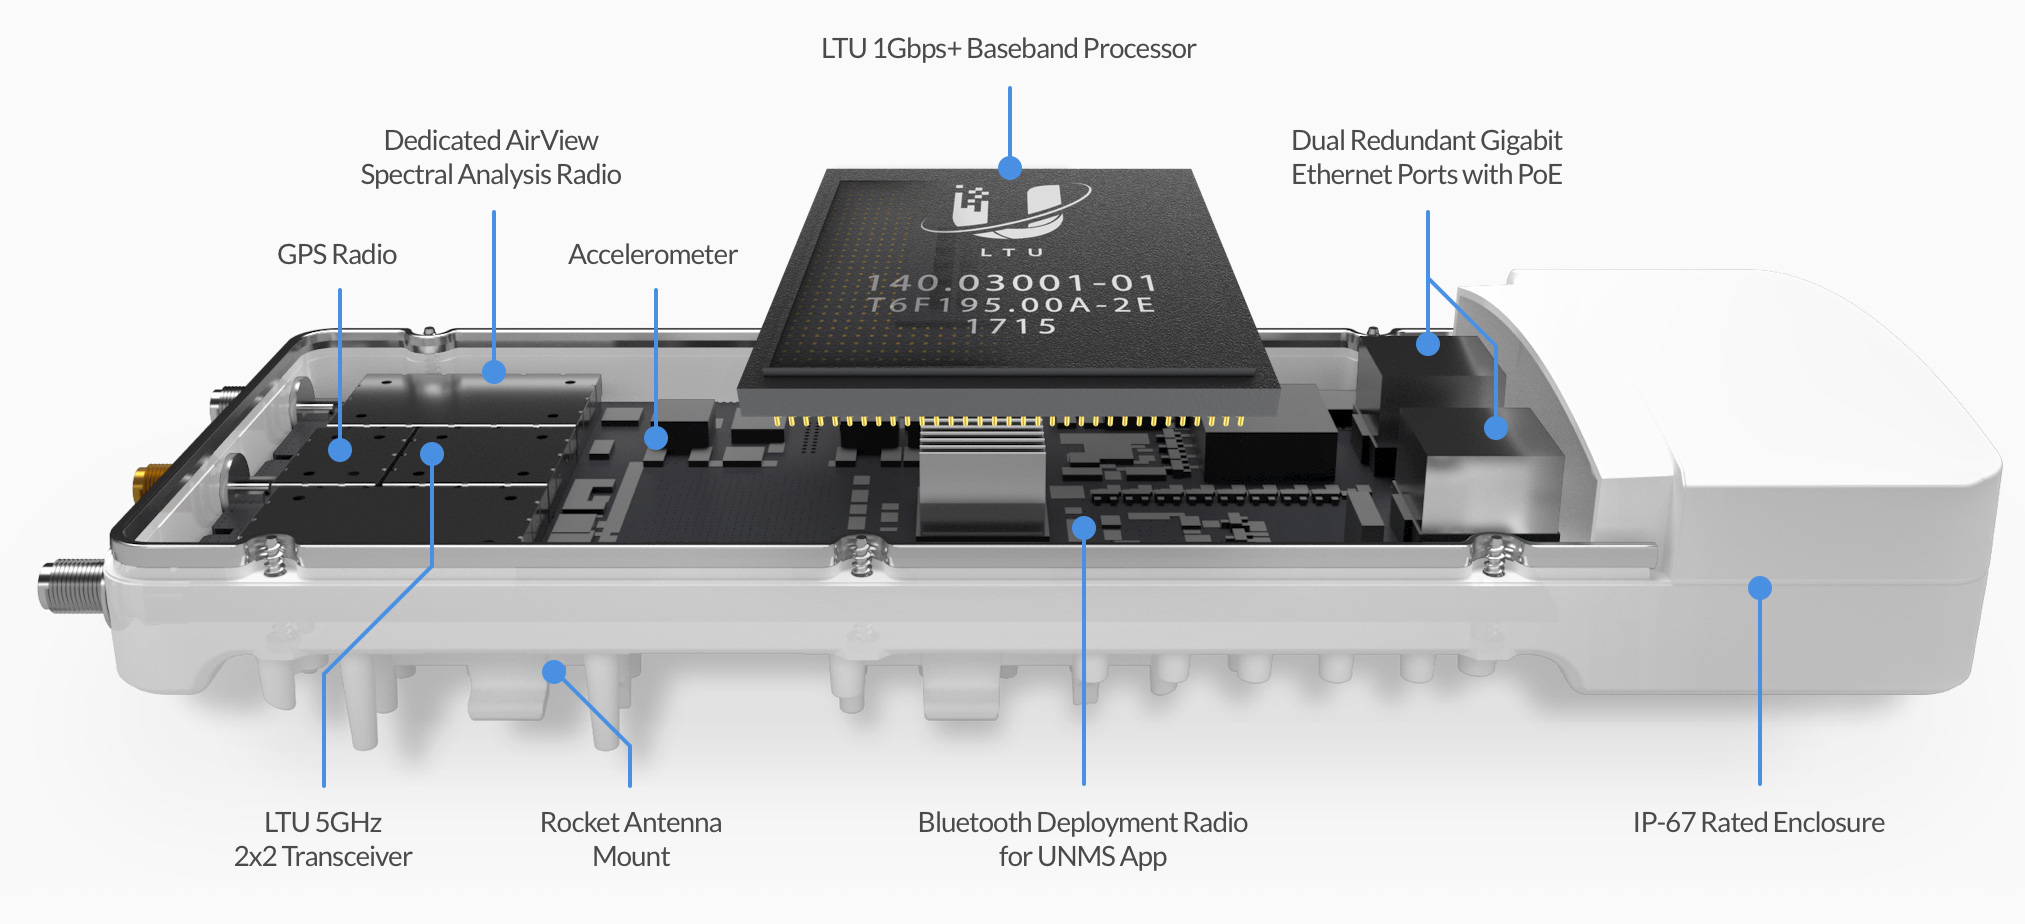 data-interchange=[https://prd-www-cdn.ubnt.com/media/images/product-features/af5xhd-feature-chip.jpg,